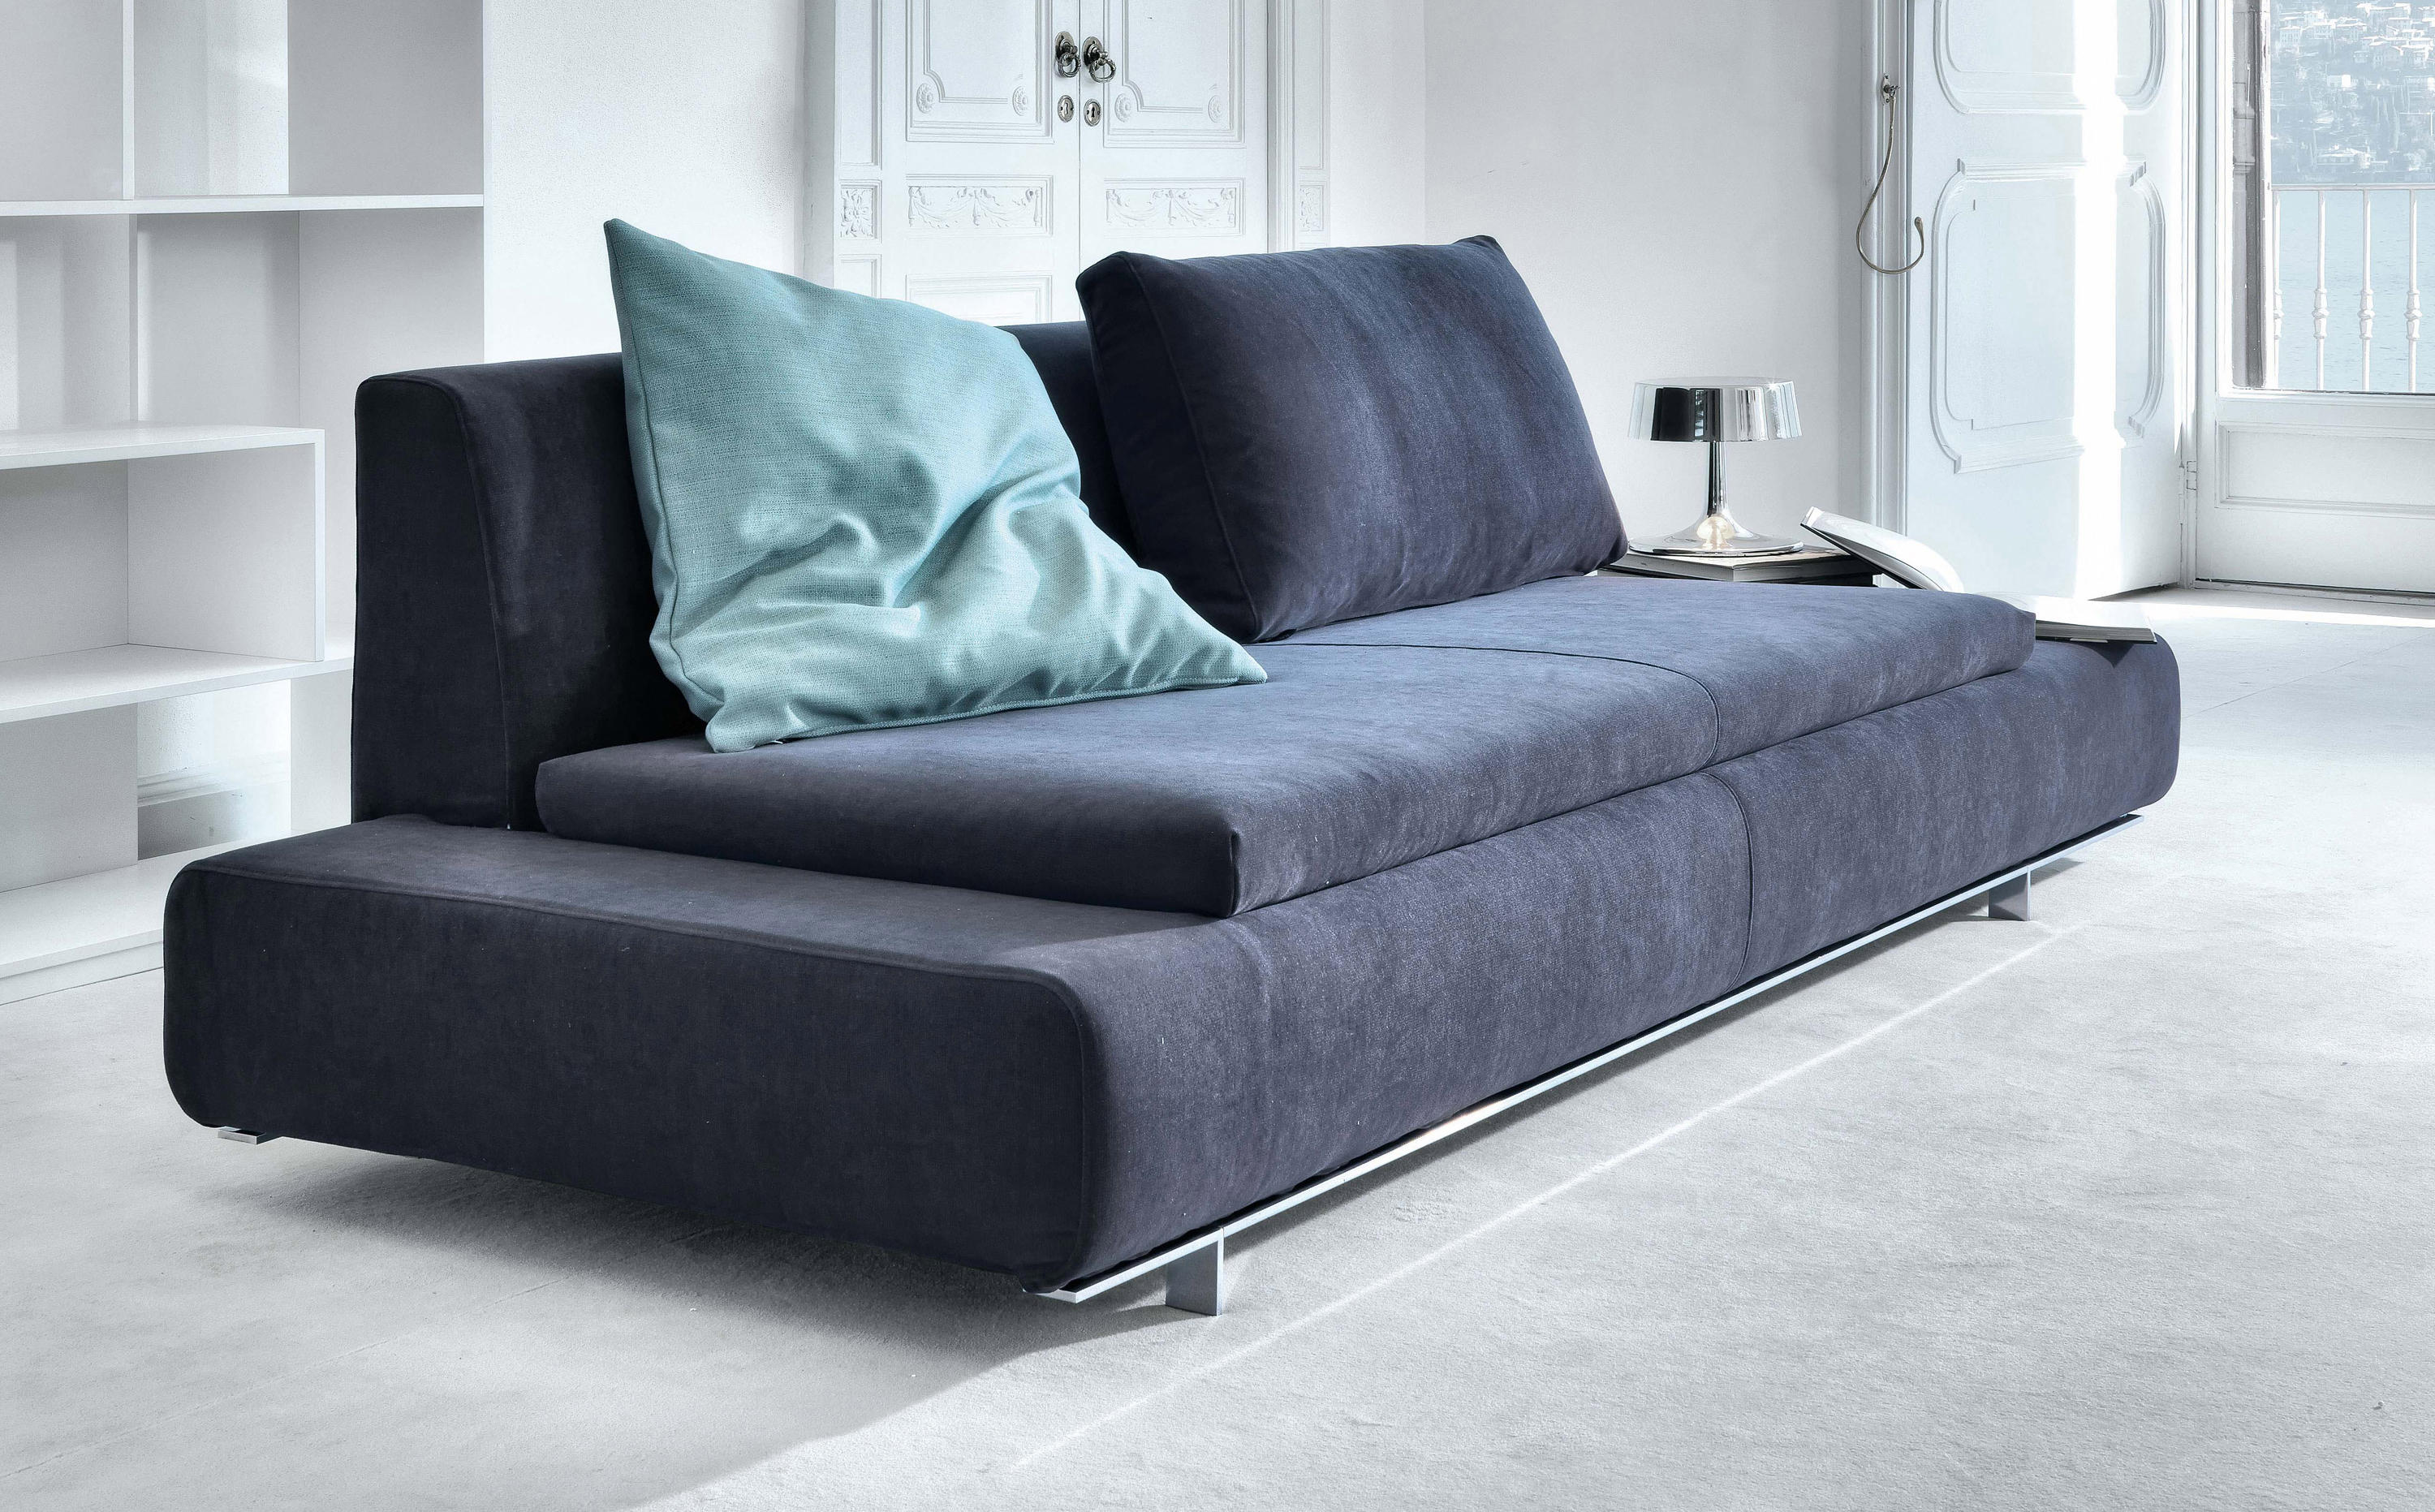 FORUM SOFA Sofas From Vibieffe Architonic - Furniture forum